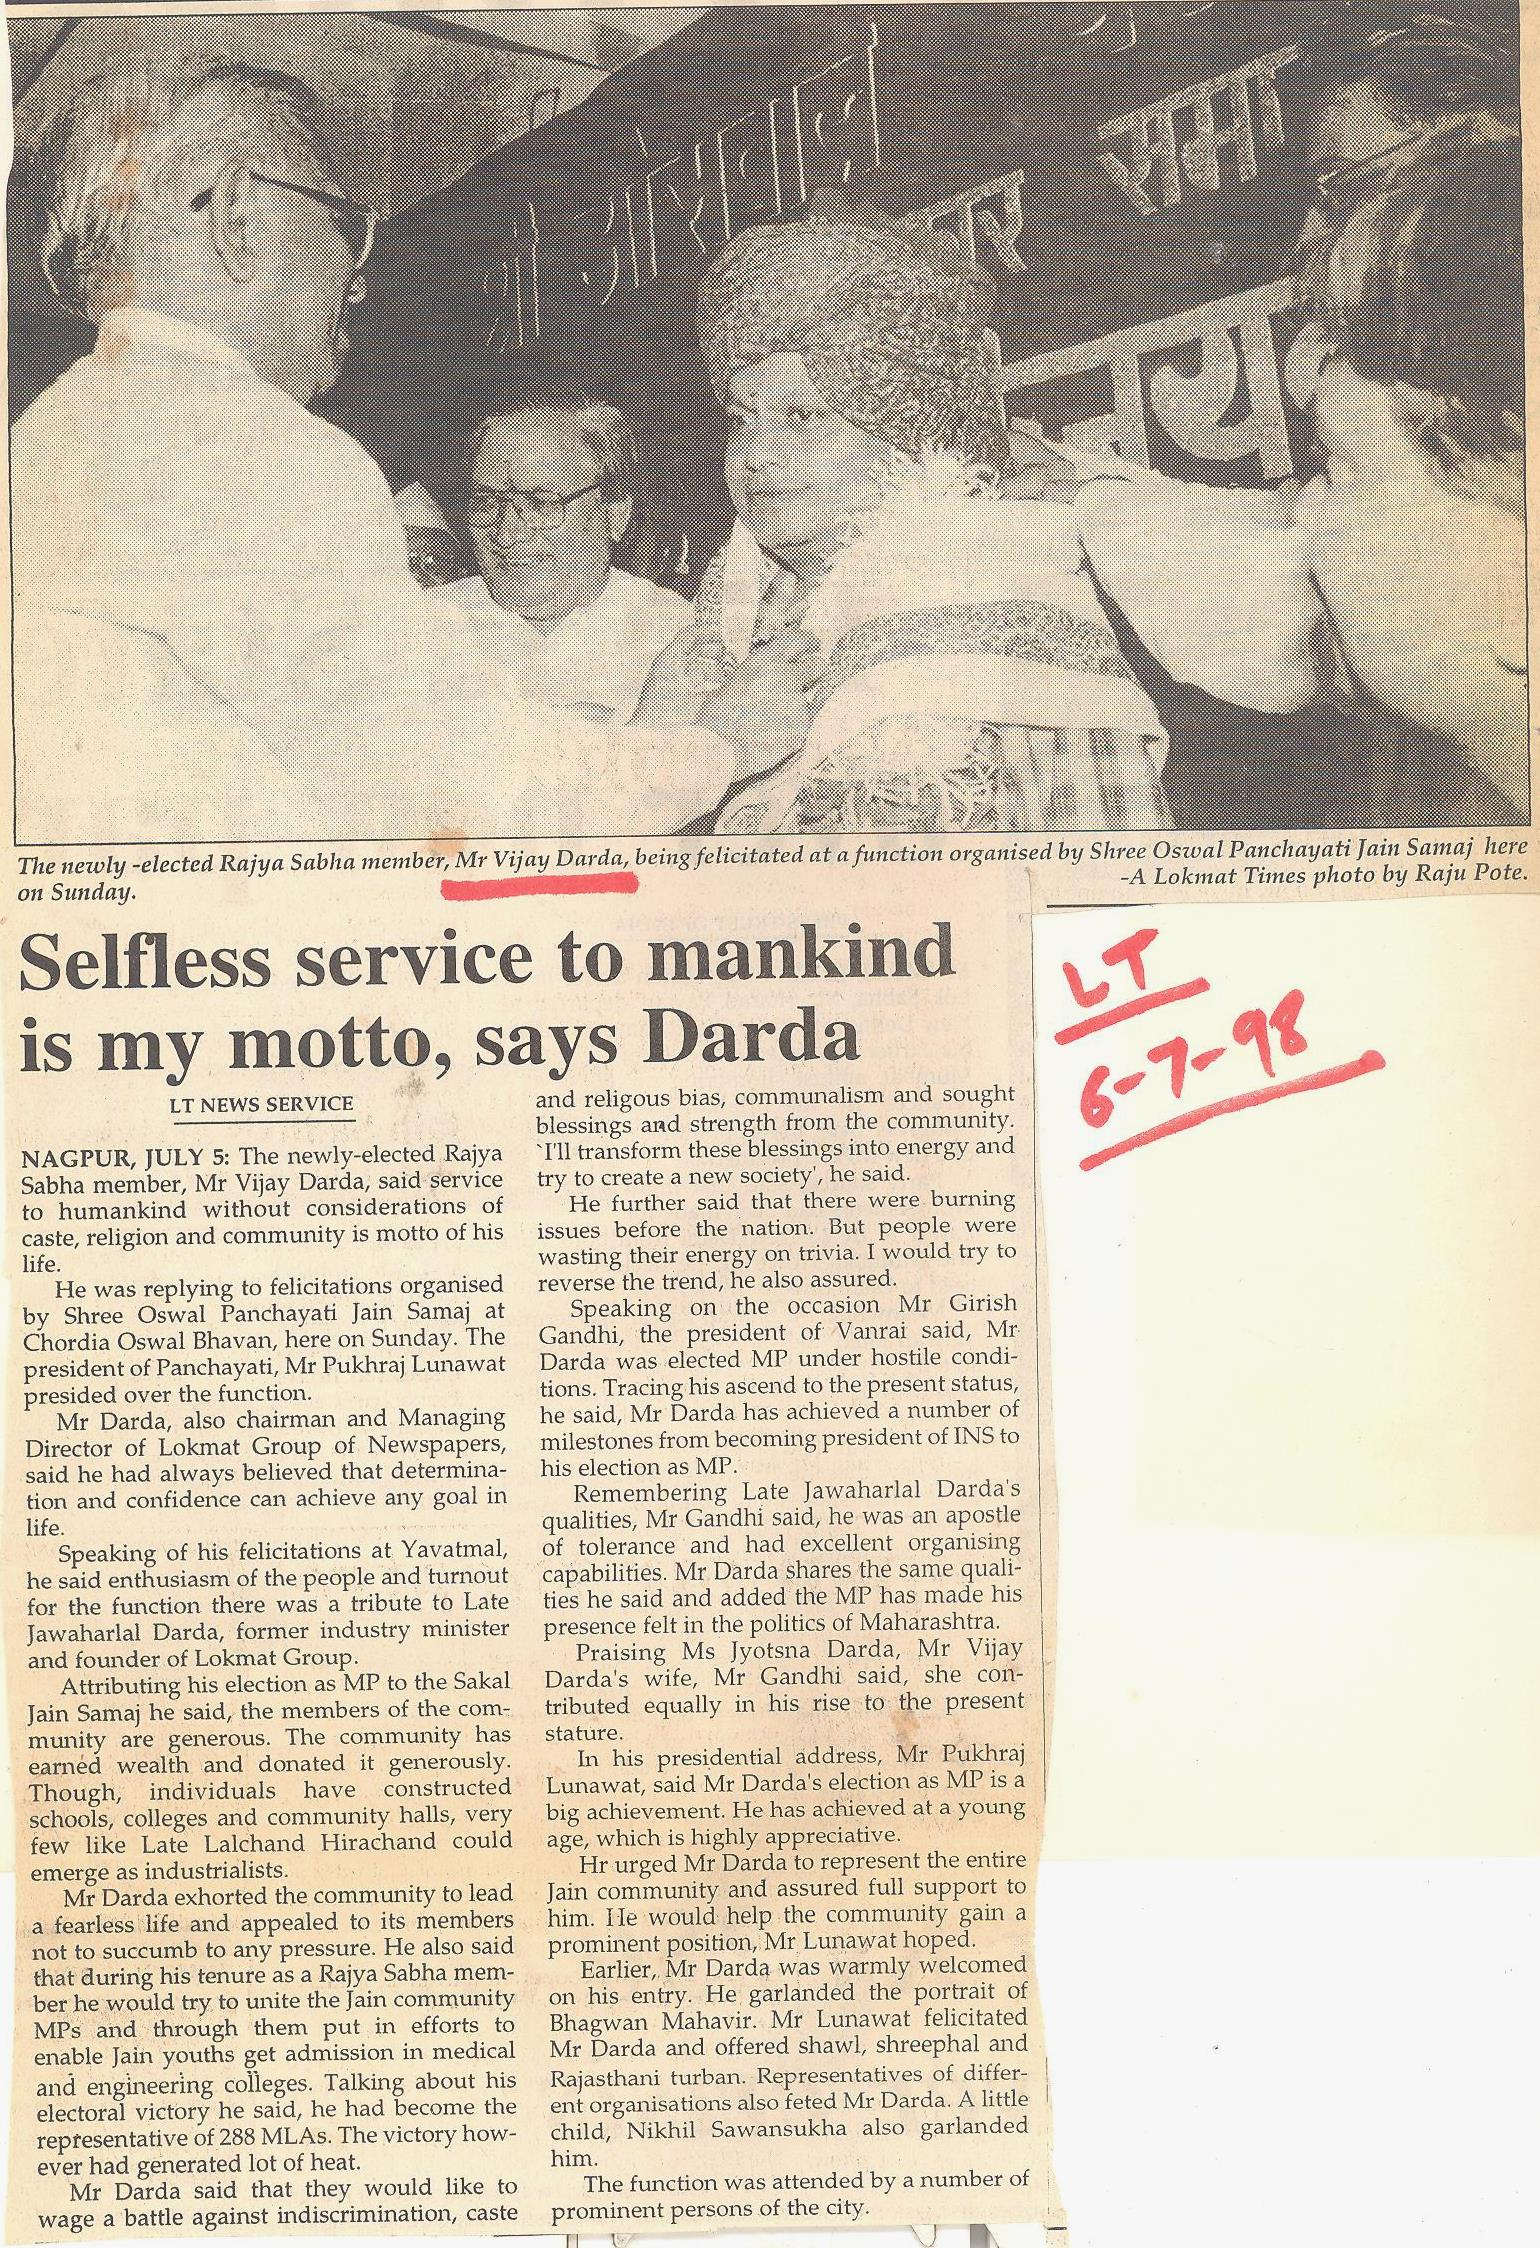 Selfless service to mankind is my motto, says Darda